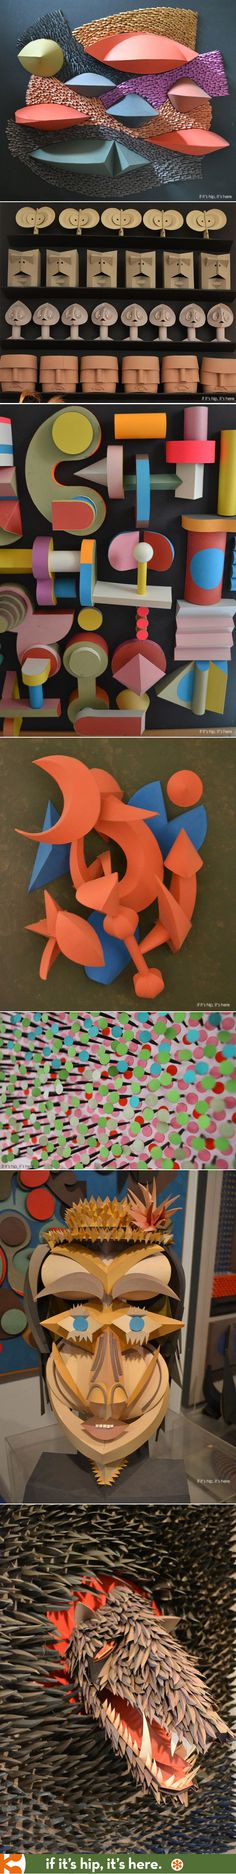 The extraordinary paper sculptures of Mid-Century Modern design legend Irving Harper. |  http://www.ifitshipitshere.com/extraordinary-paper-sculptures-mid-century-modern-design-legend-irving-harper/